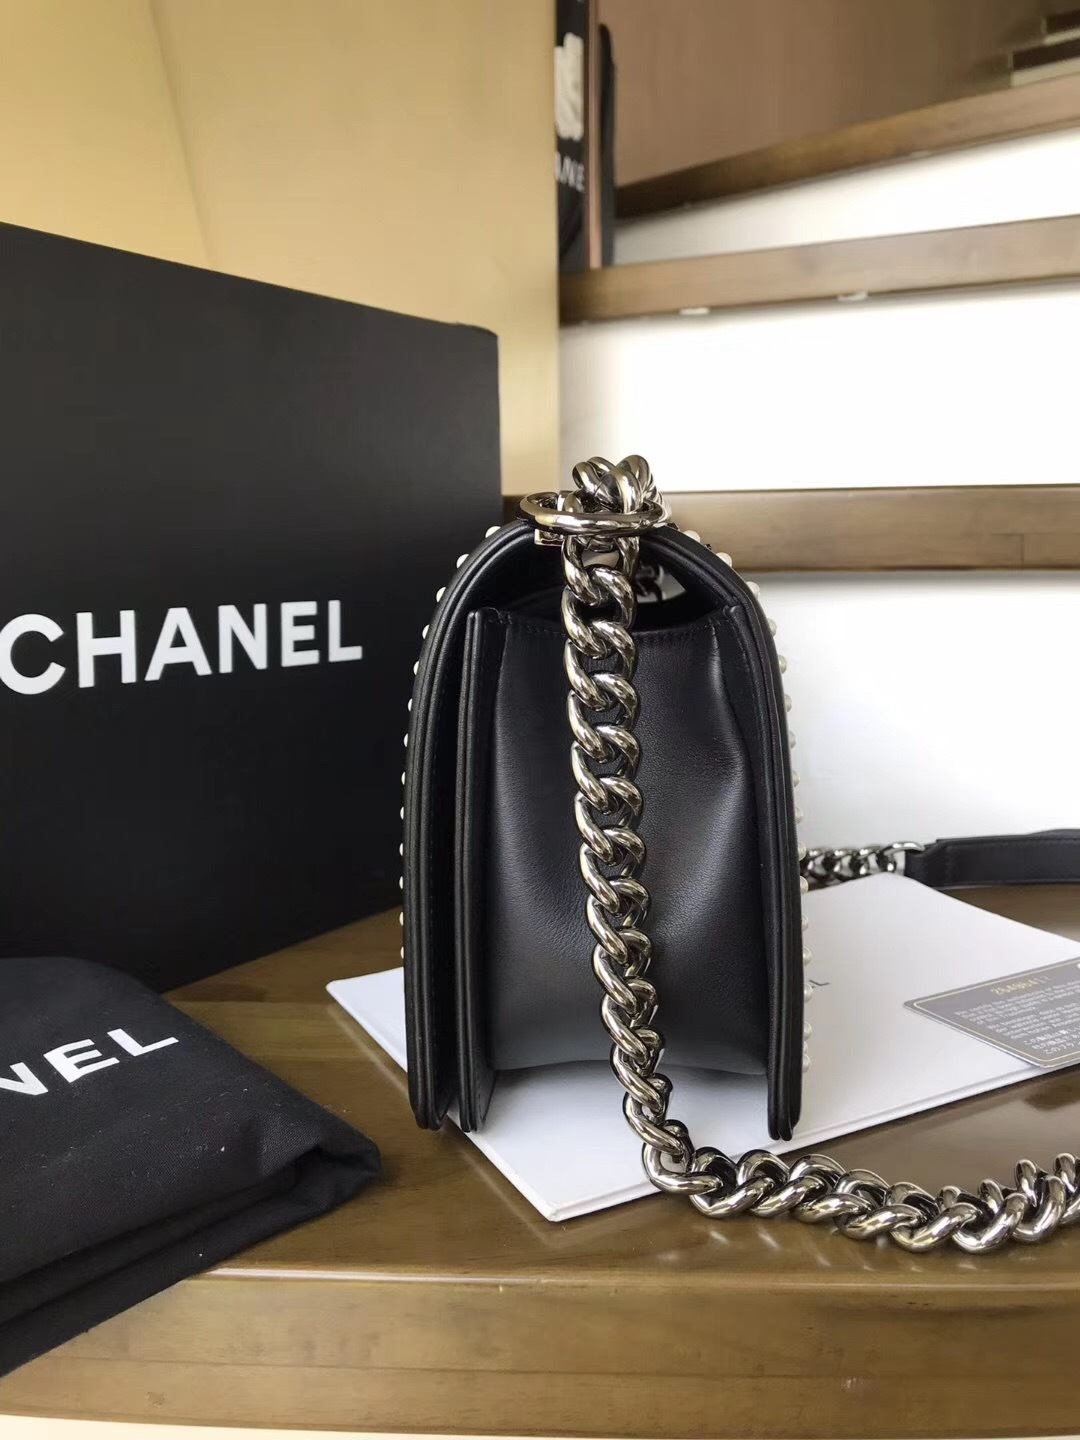 BNIB AUTHENTIC 2019 CHANEL BLACK Limited Edition Leather Medium Boy Flap Bag